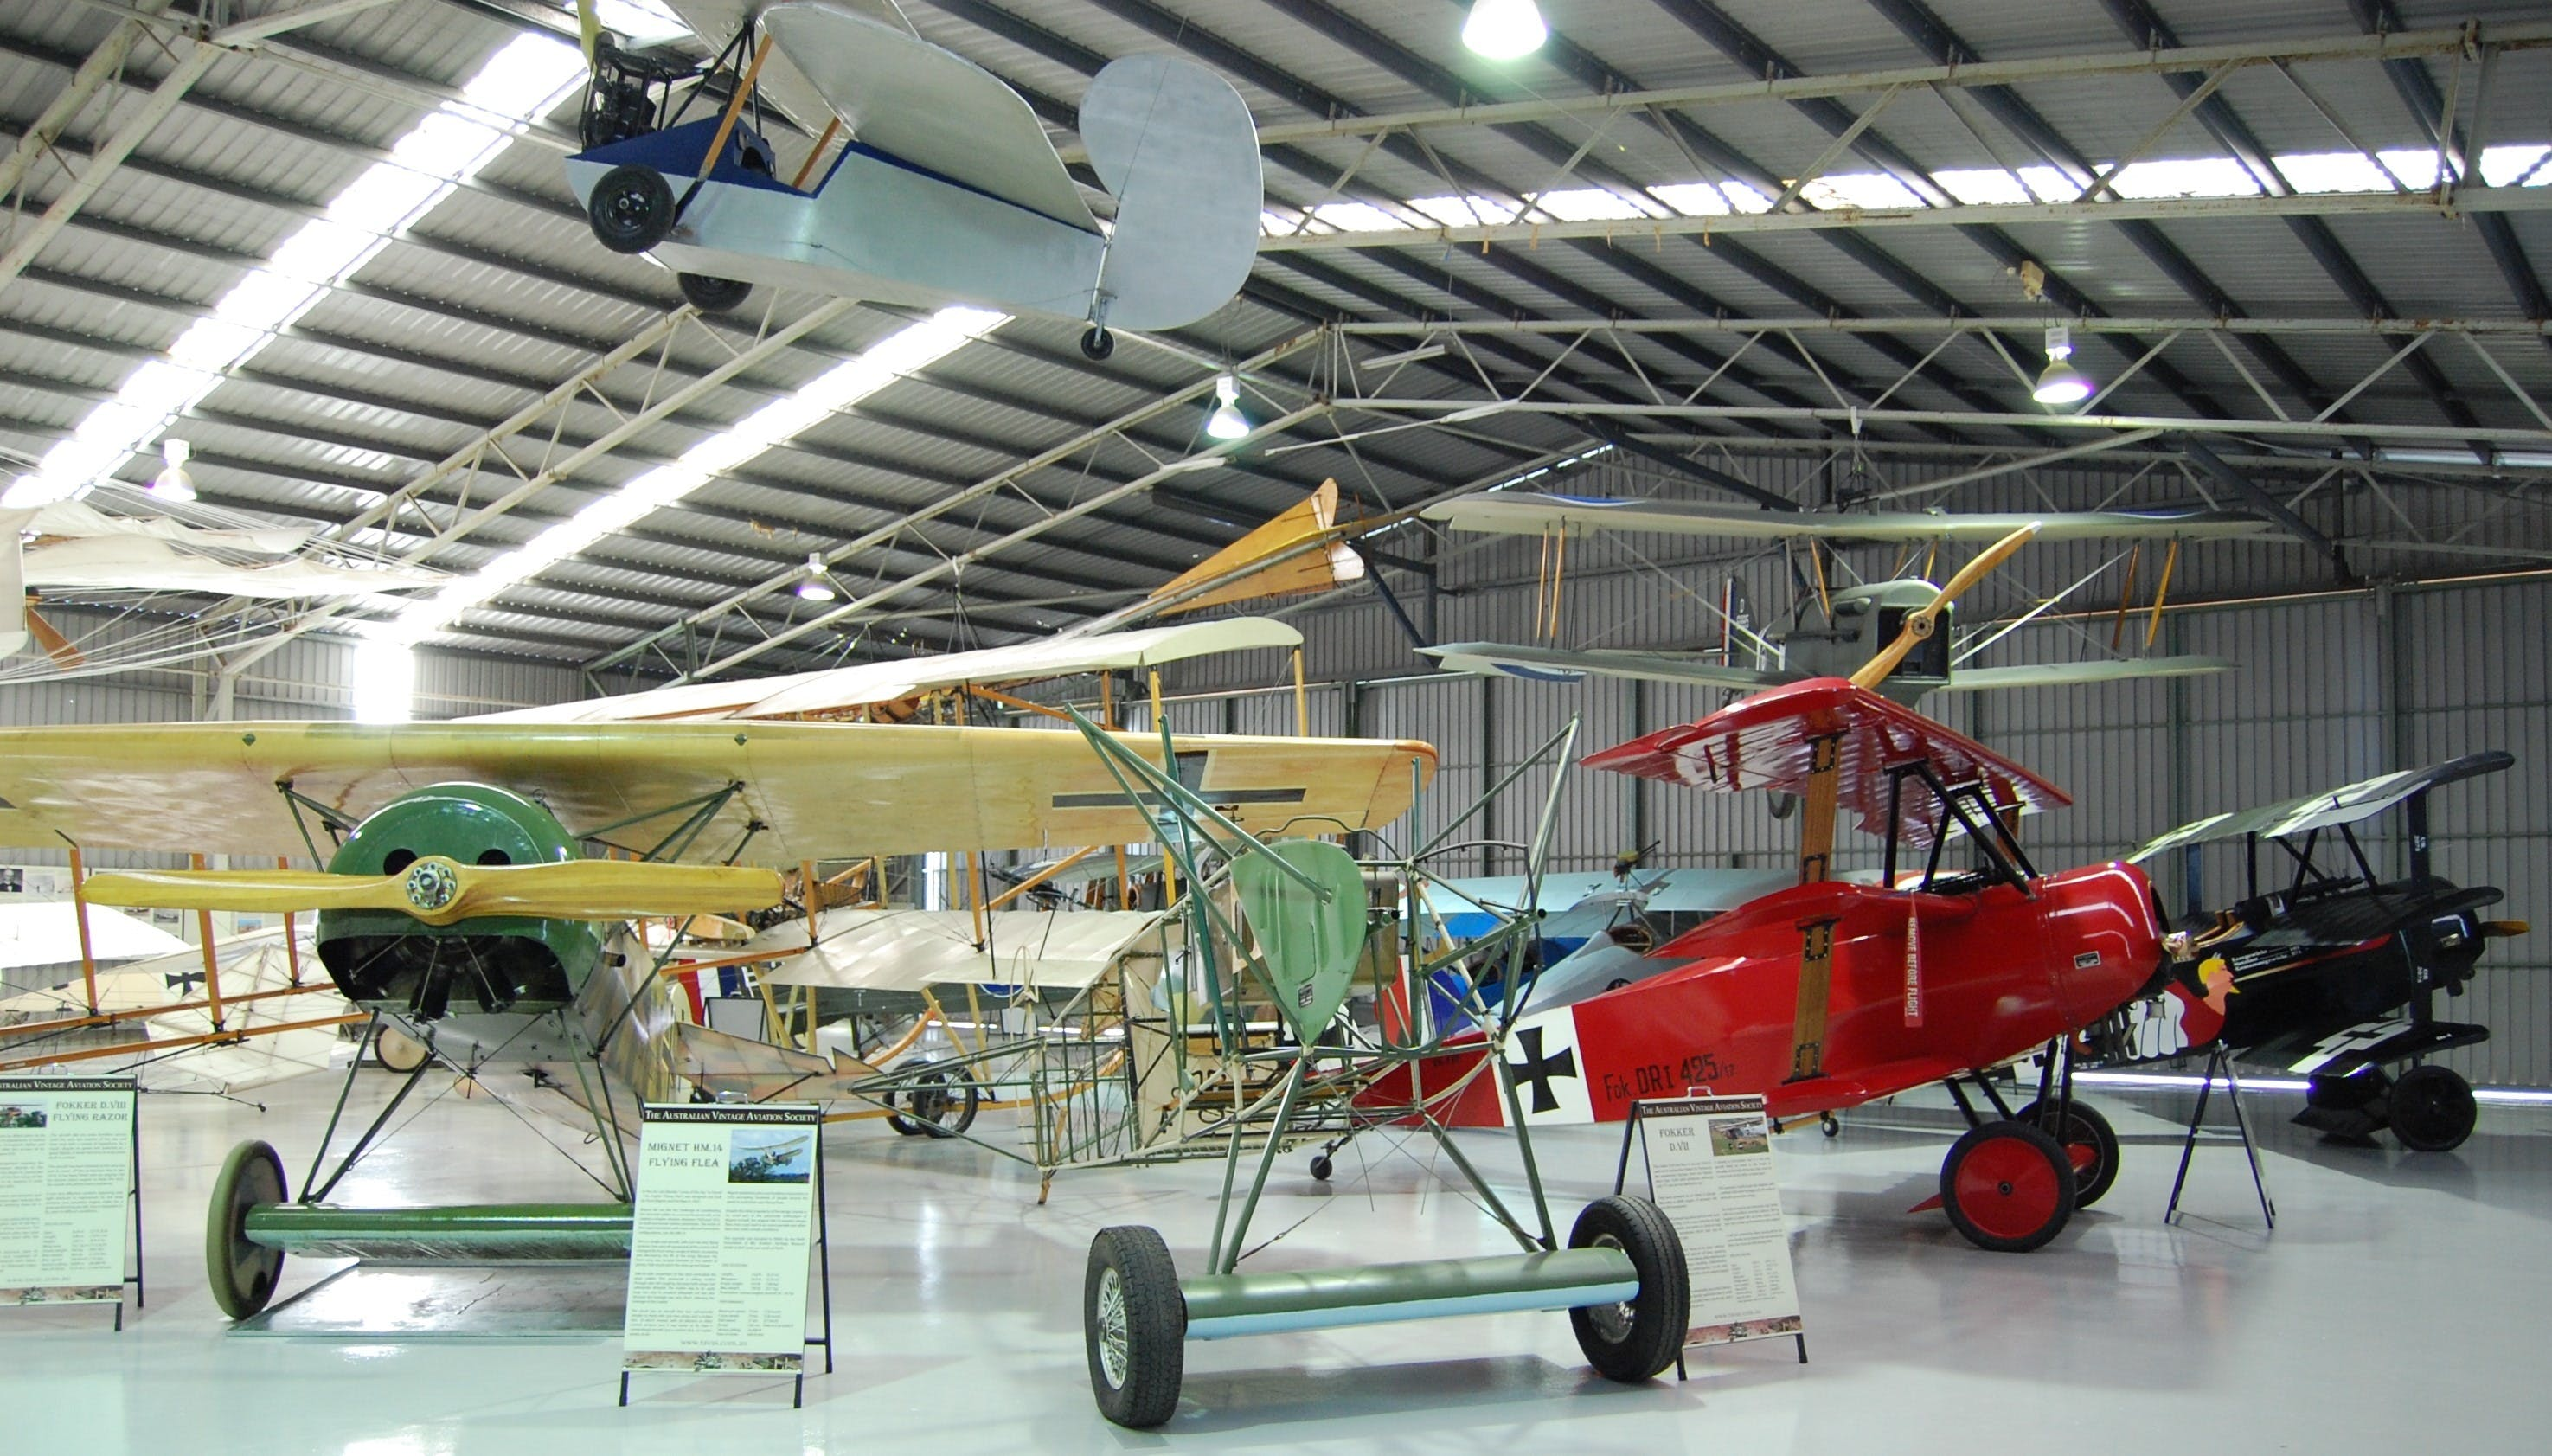 The Australian Vintage Aviation Society Museum - Accommodation Kalgoorlie